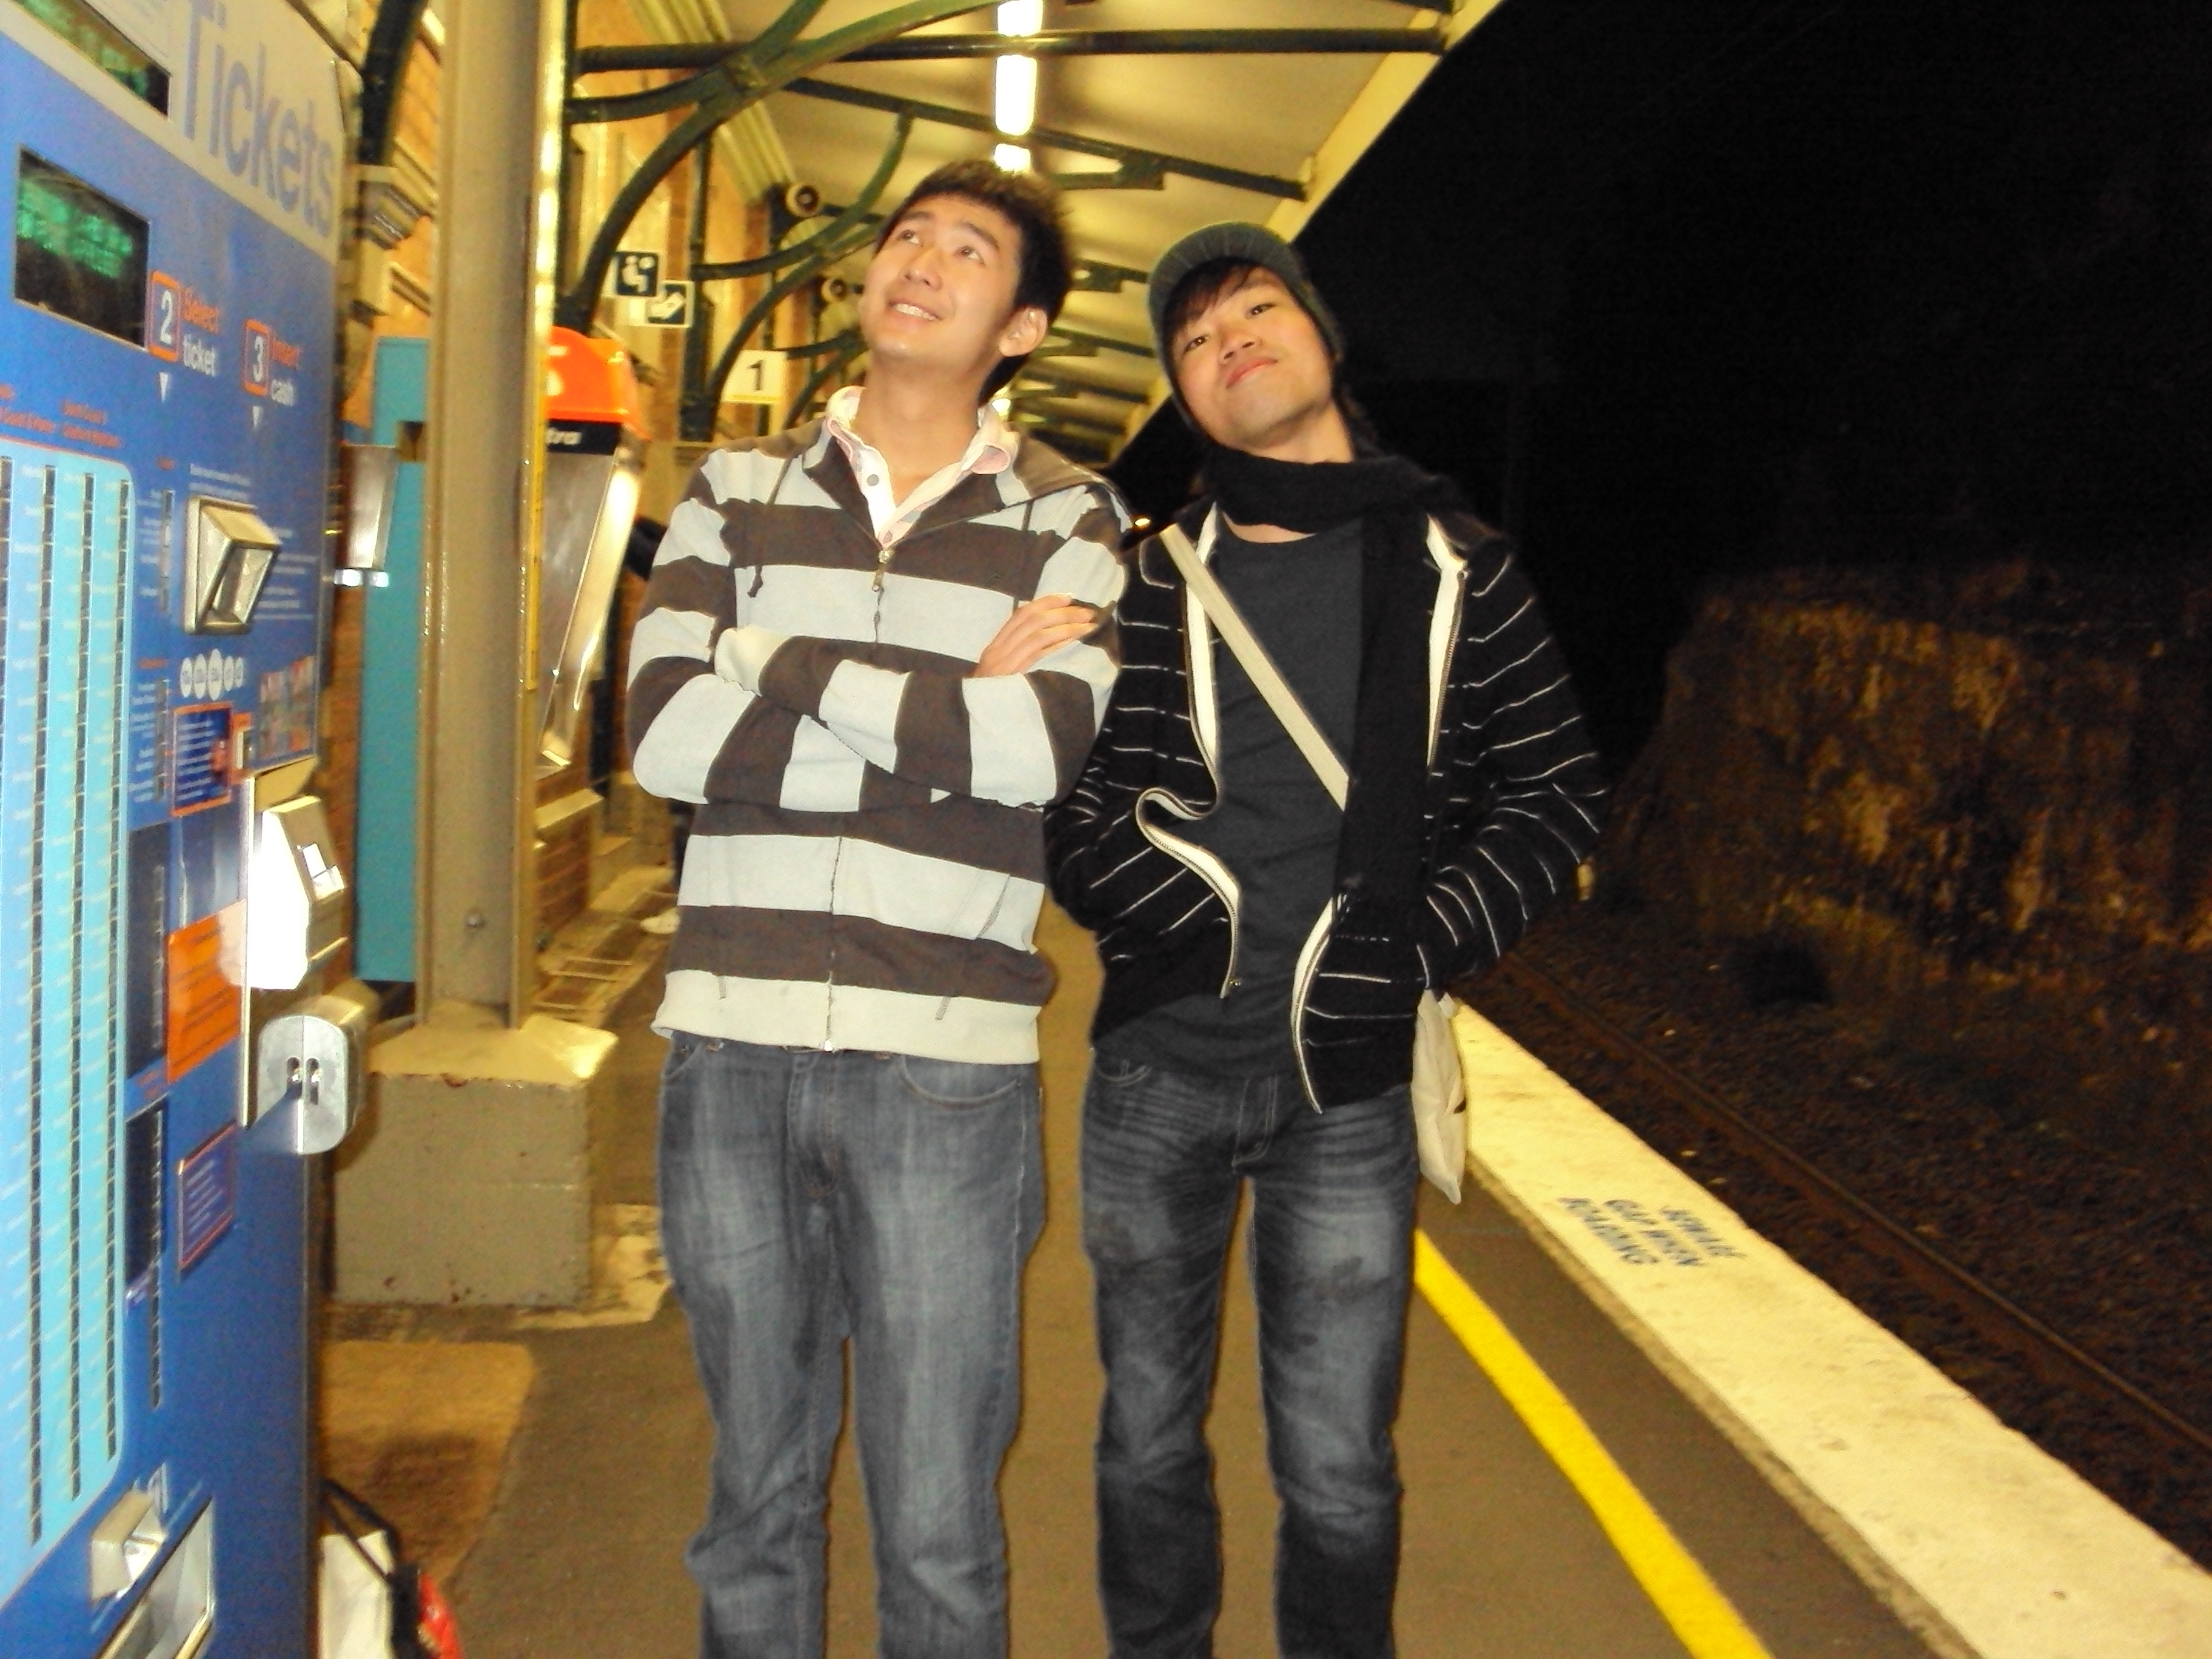 H and I on the platform